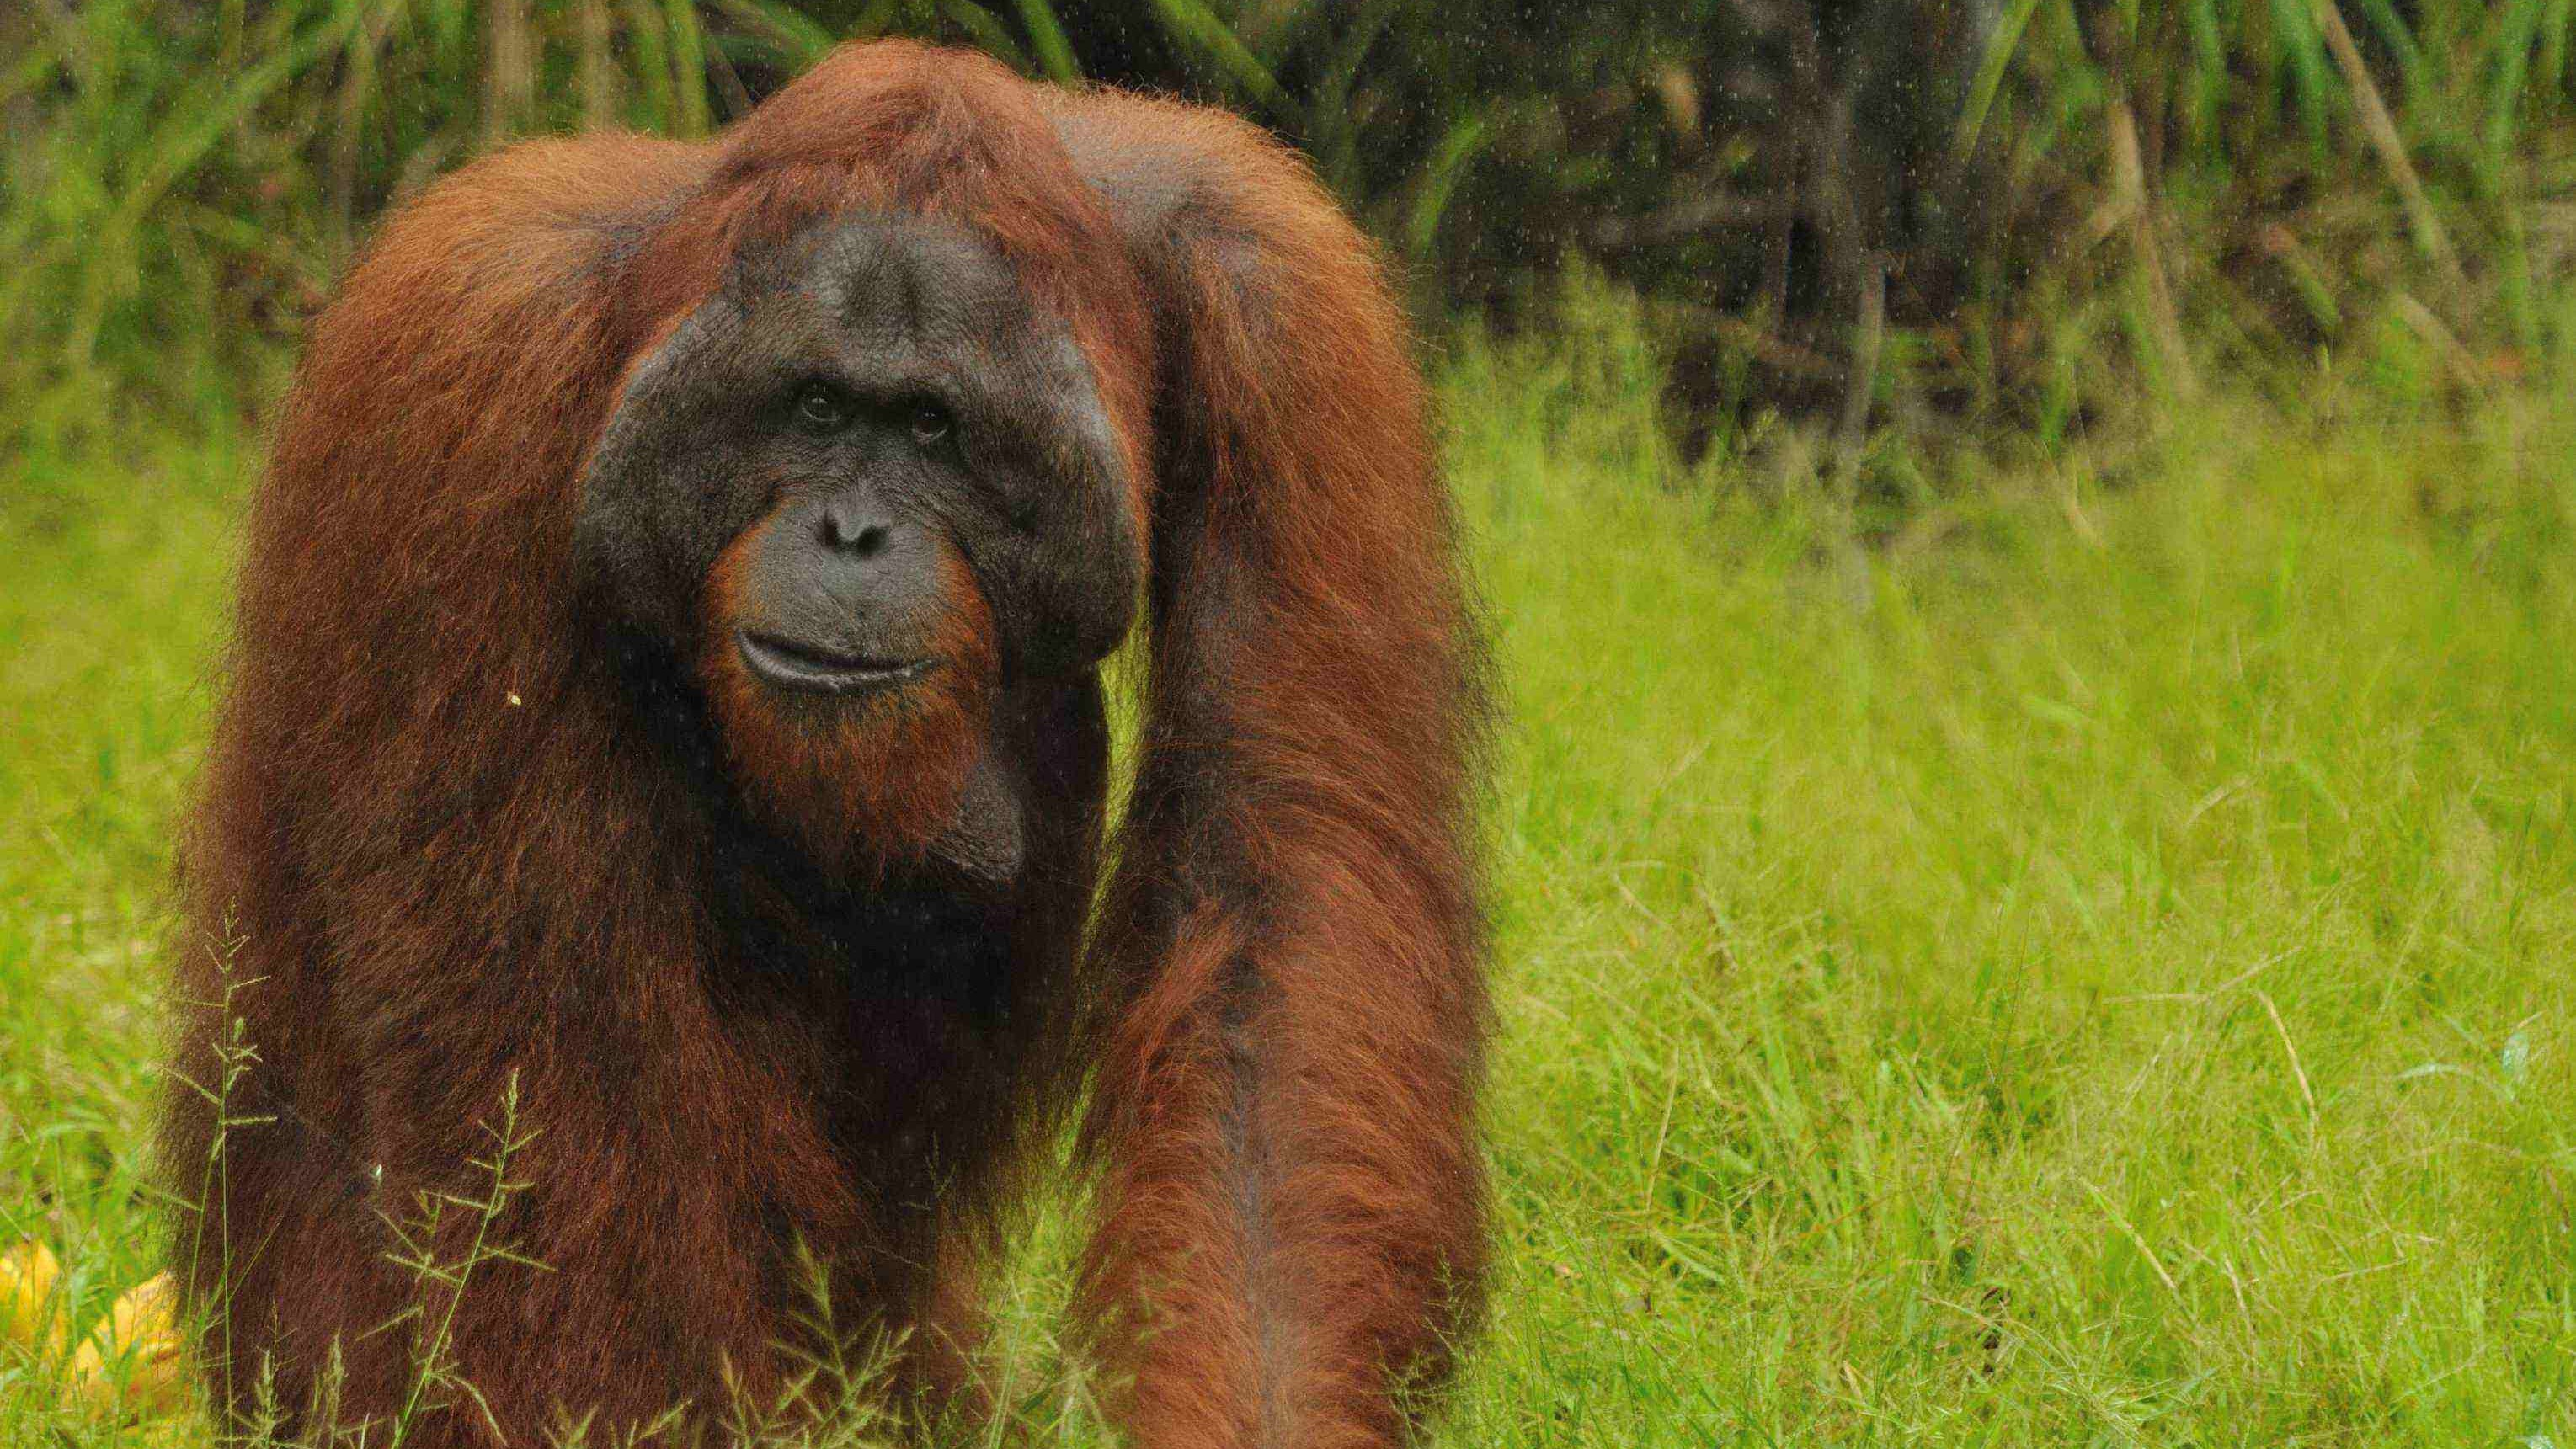 tanjung puting park, camp leakey, pondok tanggui, trek, jungle, forest, hike, orangutan, wildlife, proboscis monkey, gibbon, wildlife, safari, tour, trip, hike, journey, kalimantan, borneo, indonesia